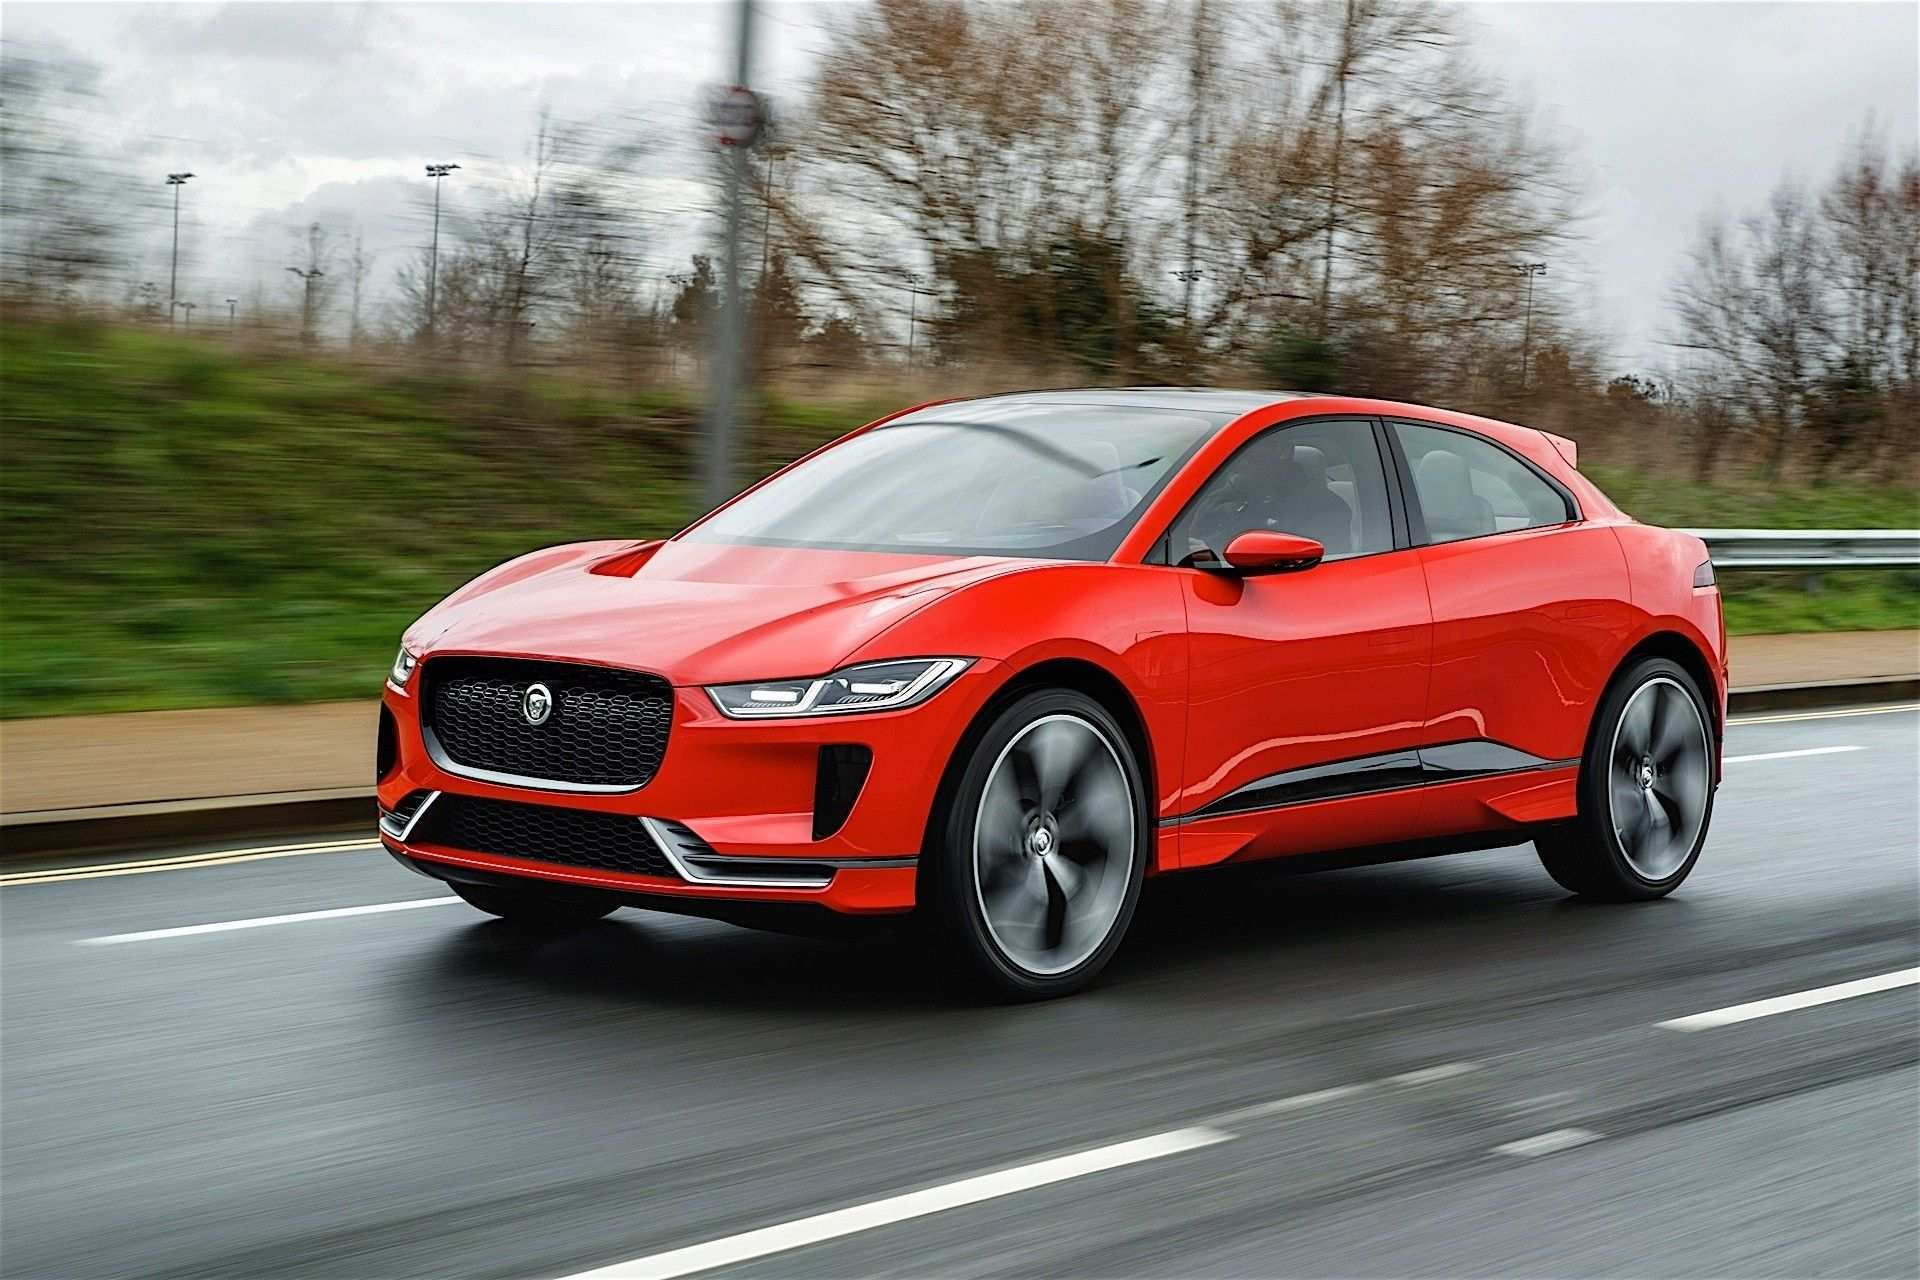 65 Best Review 2020 Jaguar Xq Crossover Performance for 2020 Jaguar Xq Crossover